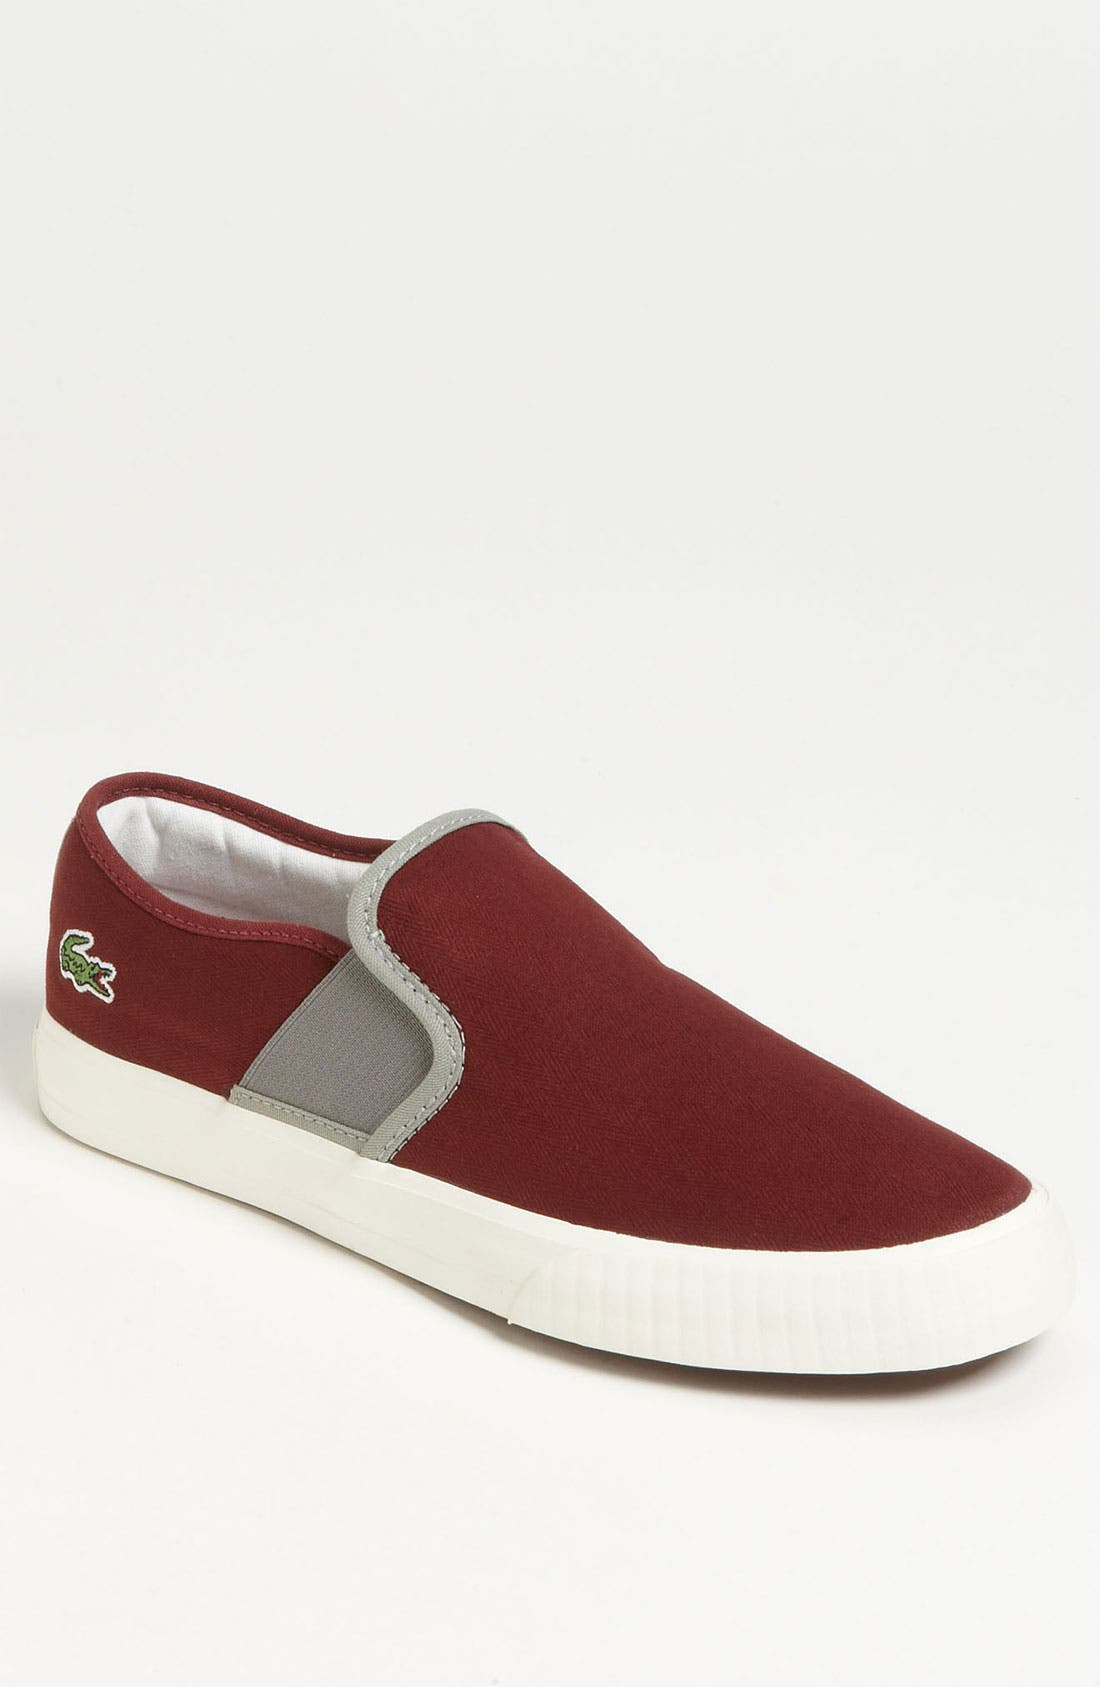 Main Image - Lacoste 'Lombardcre' Slip-On